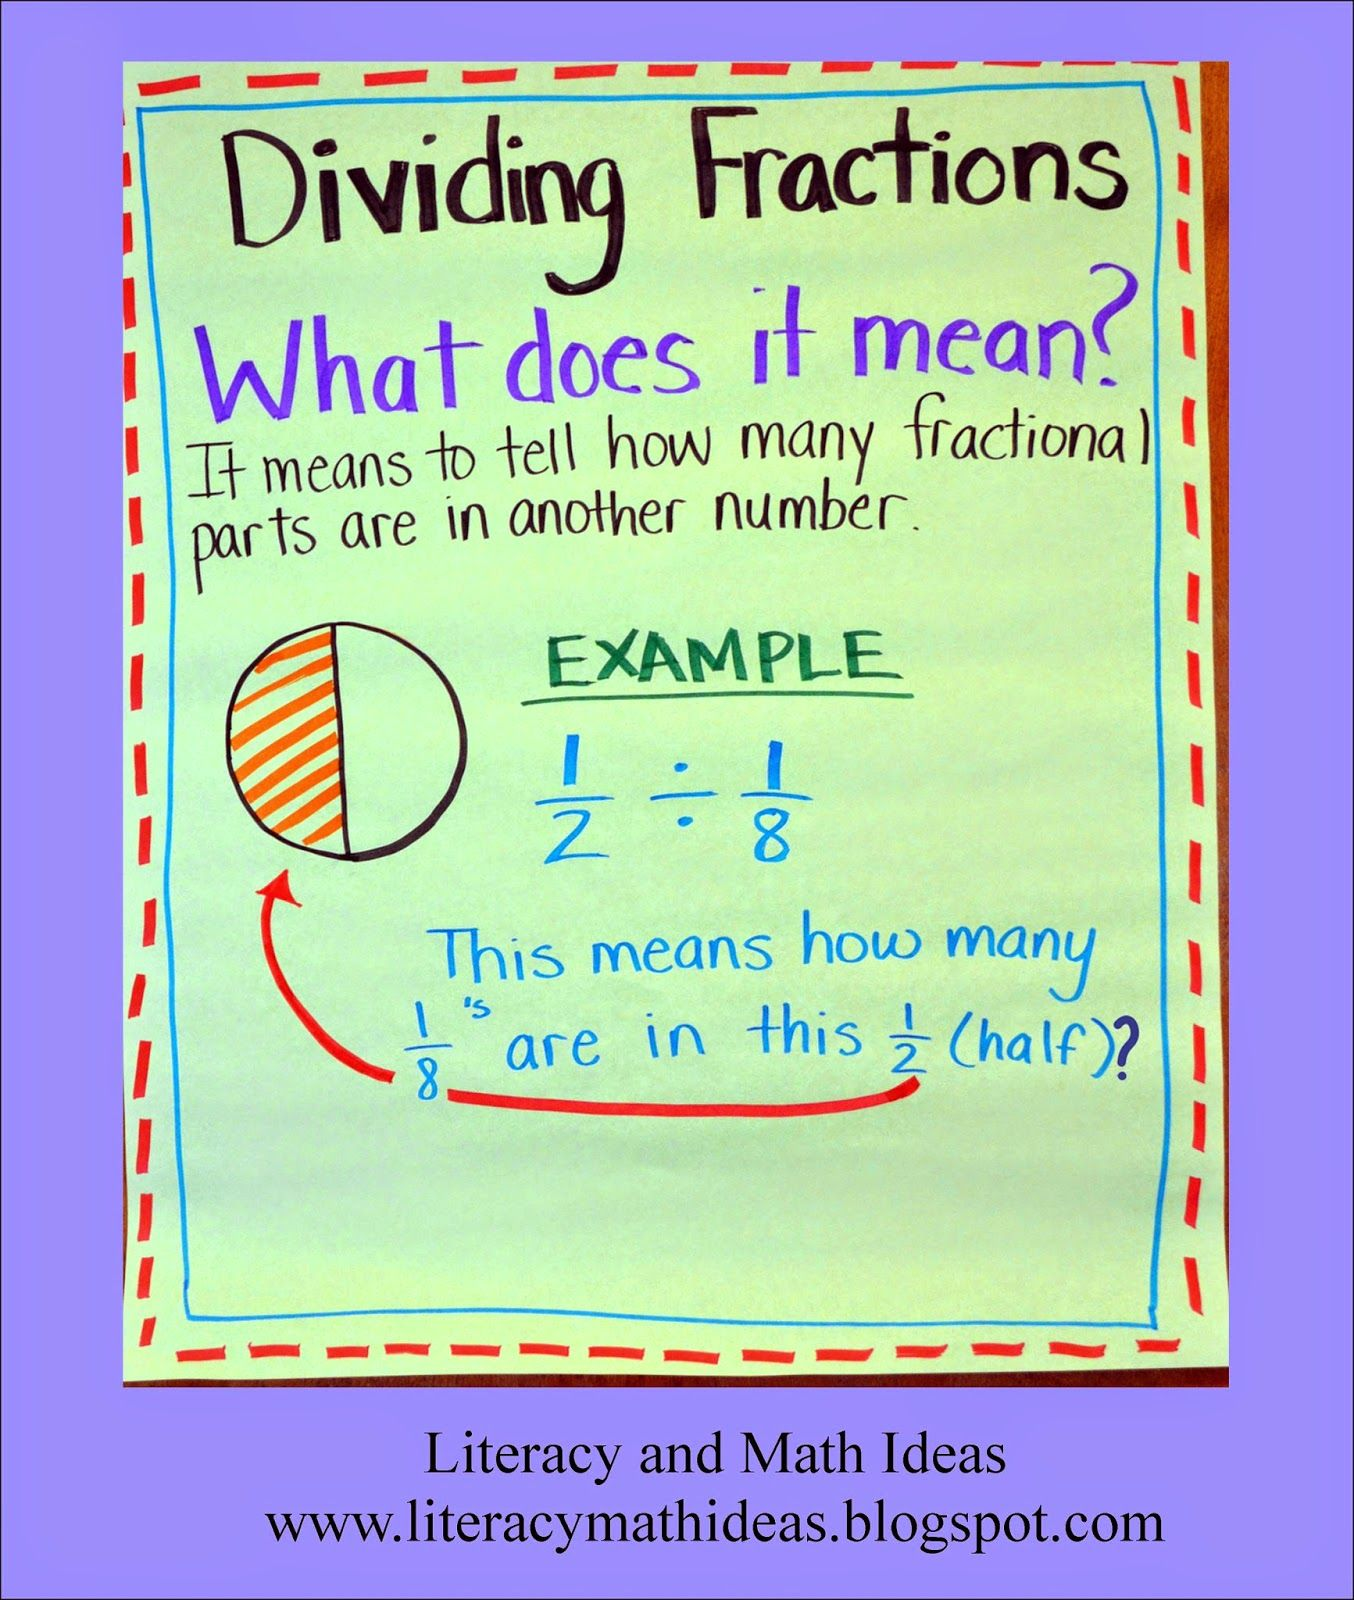 Literacy Amp Math Ideas What Does It Mean To Divide Fractions Teaching Ideas For Deeper